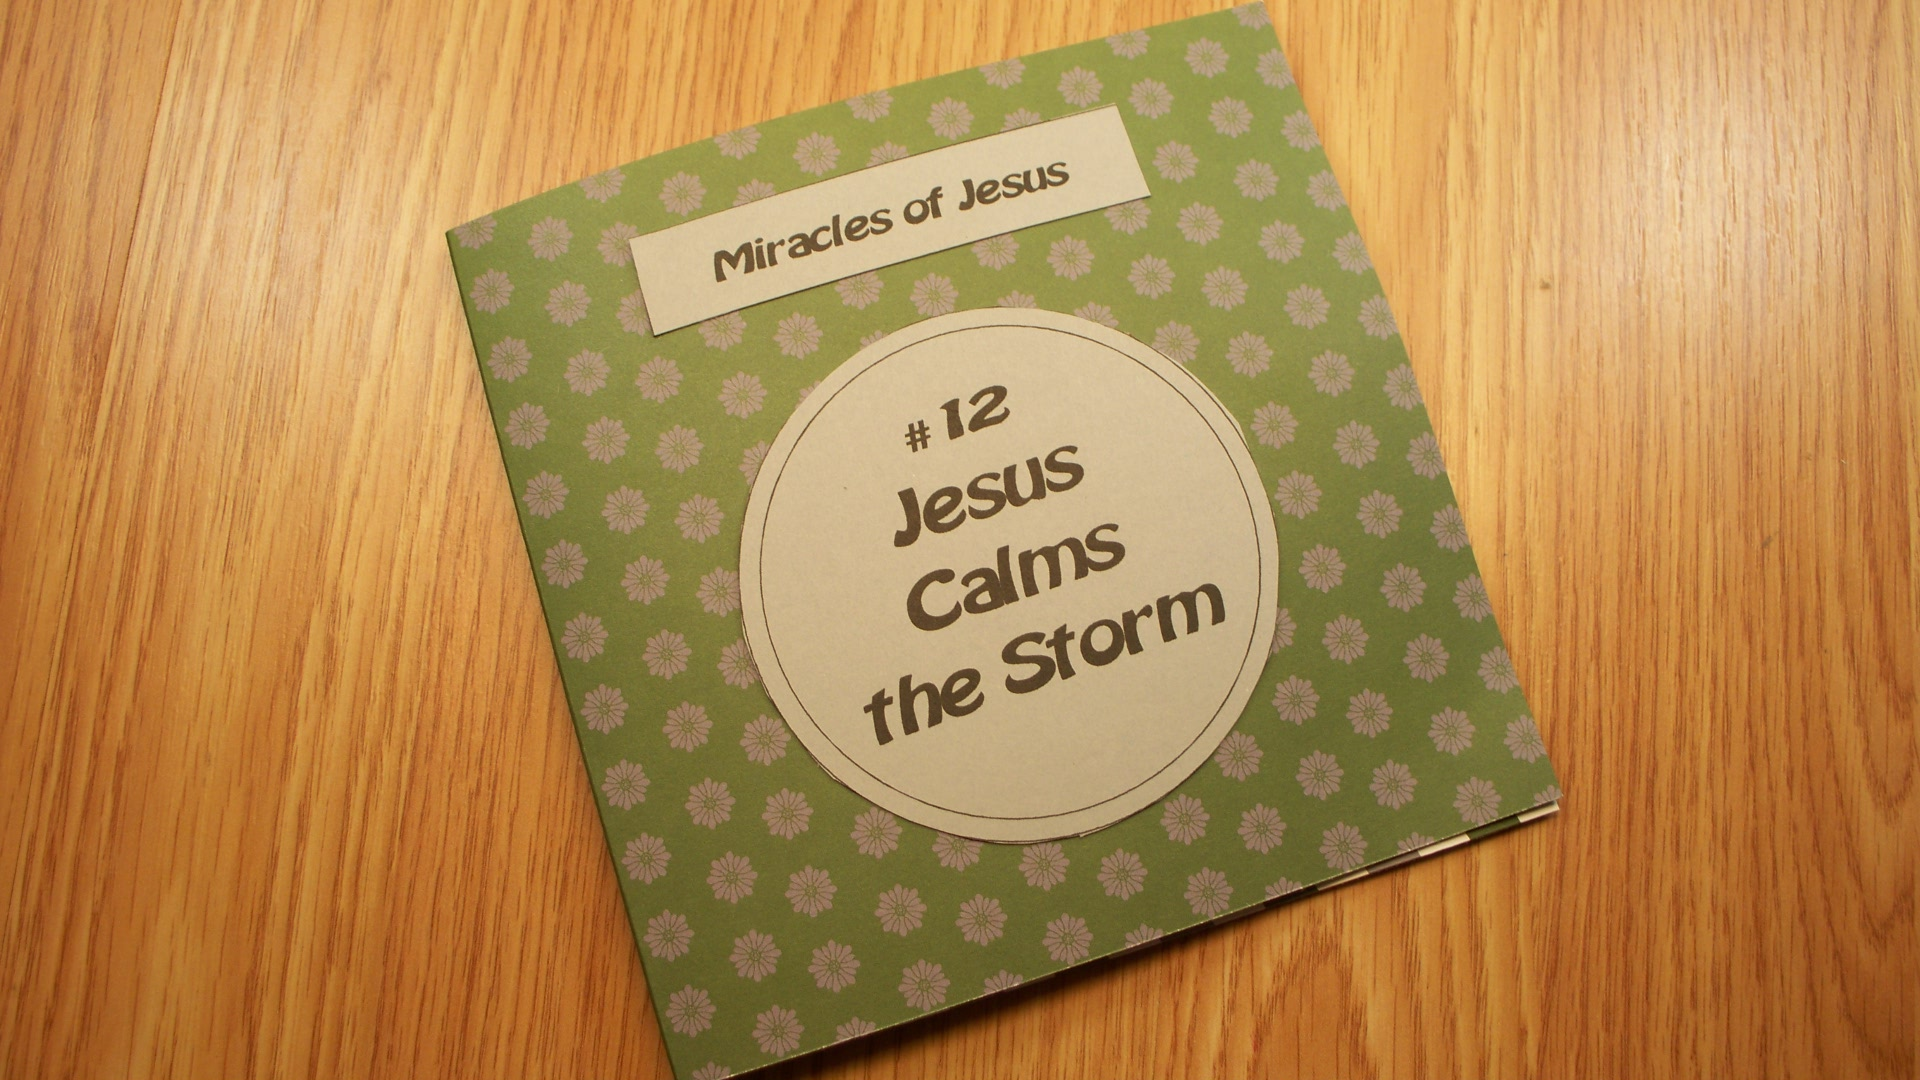 #12 Jesus Calms The Storm